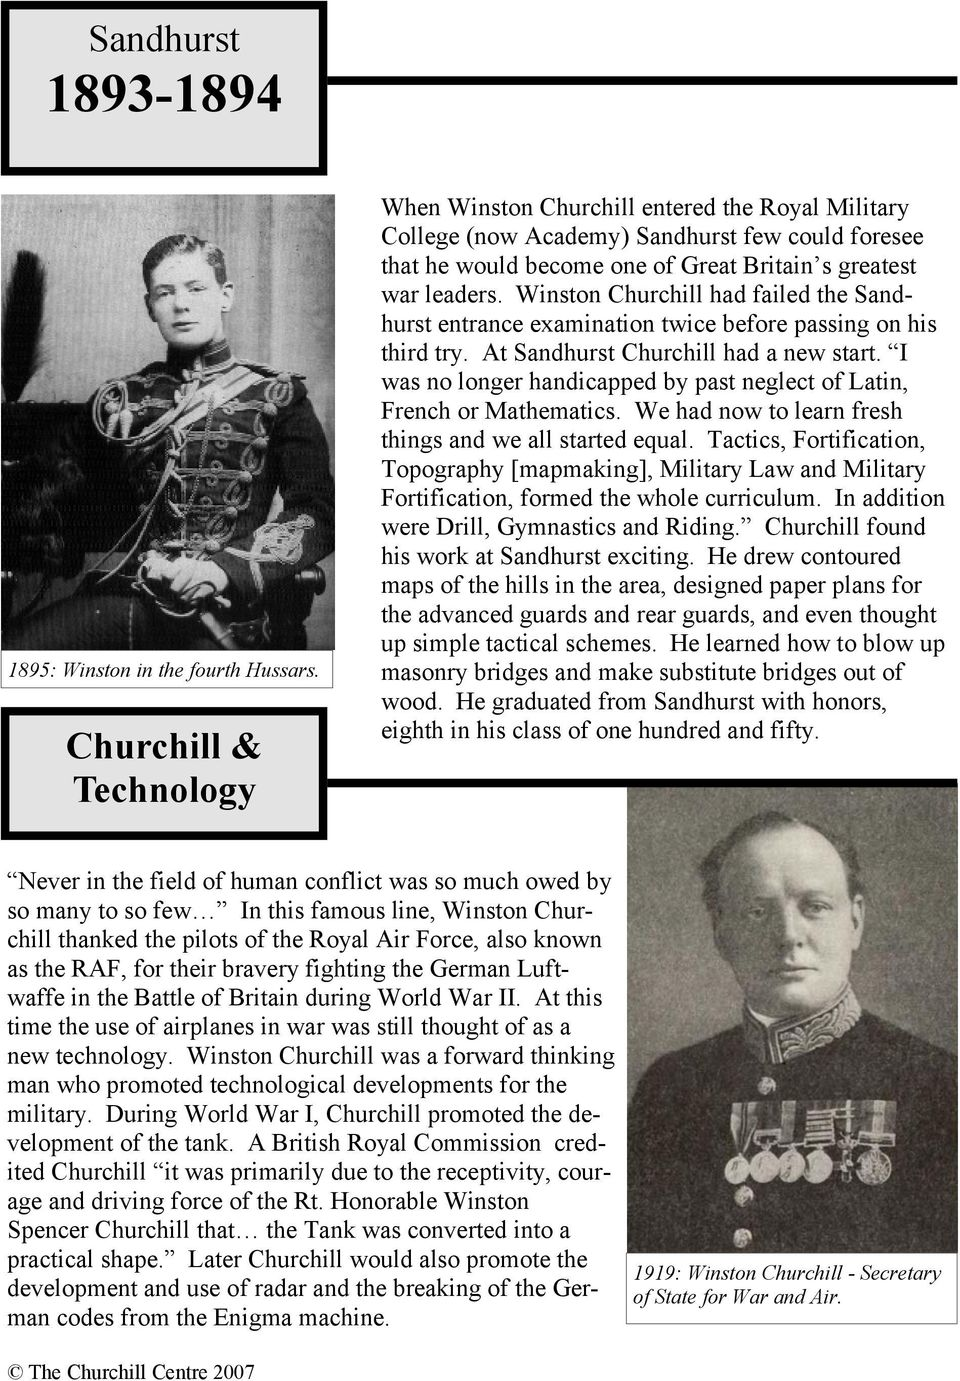 Winston Churchill had failed the Sandhurst entrance examination twice before passing on his third try. At Sandhurst Churchill had a new start.